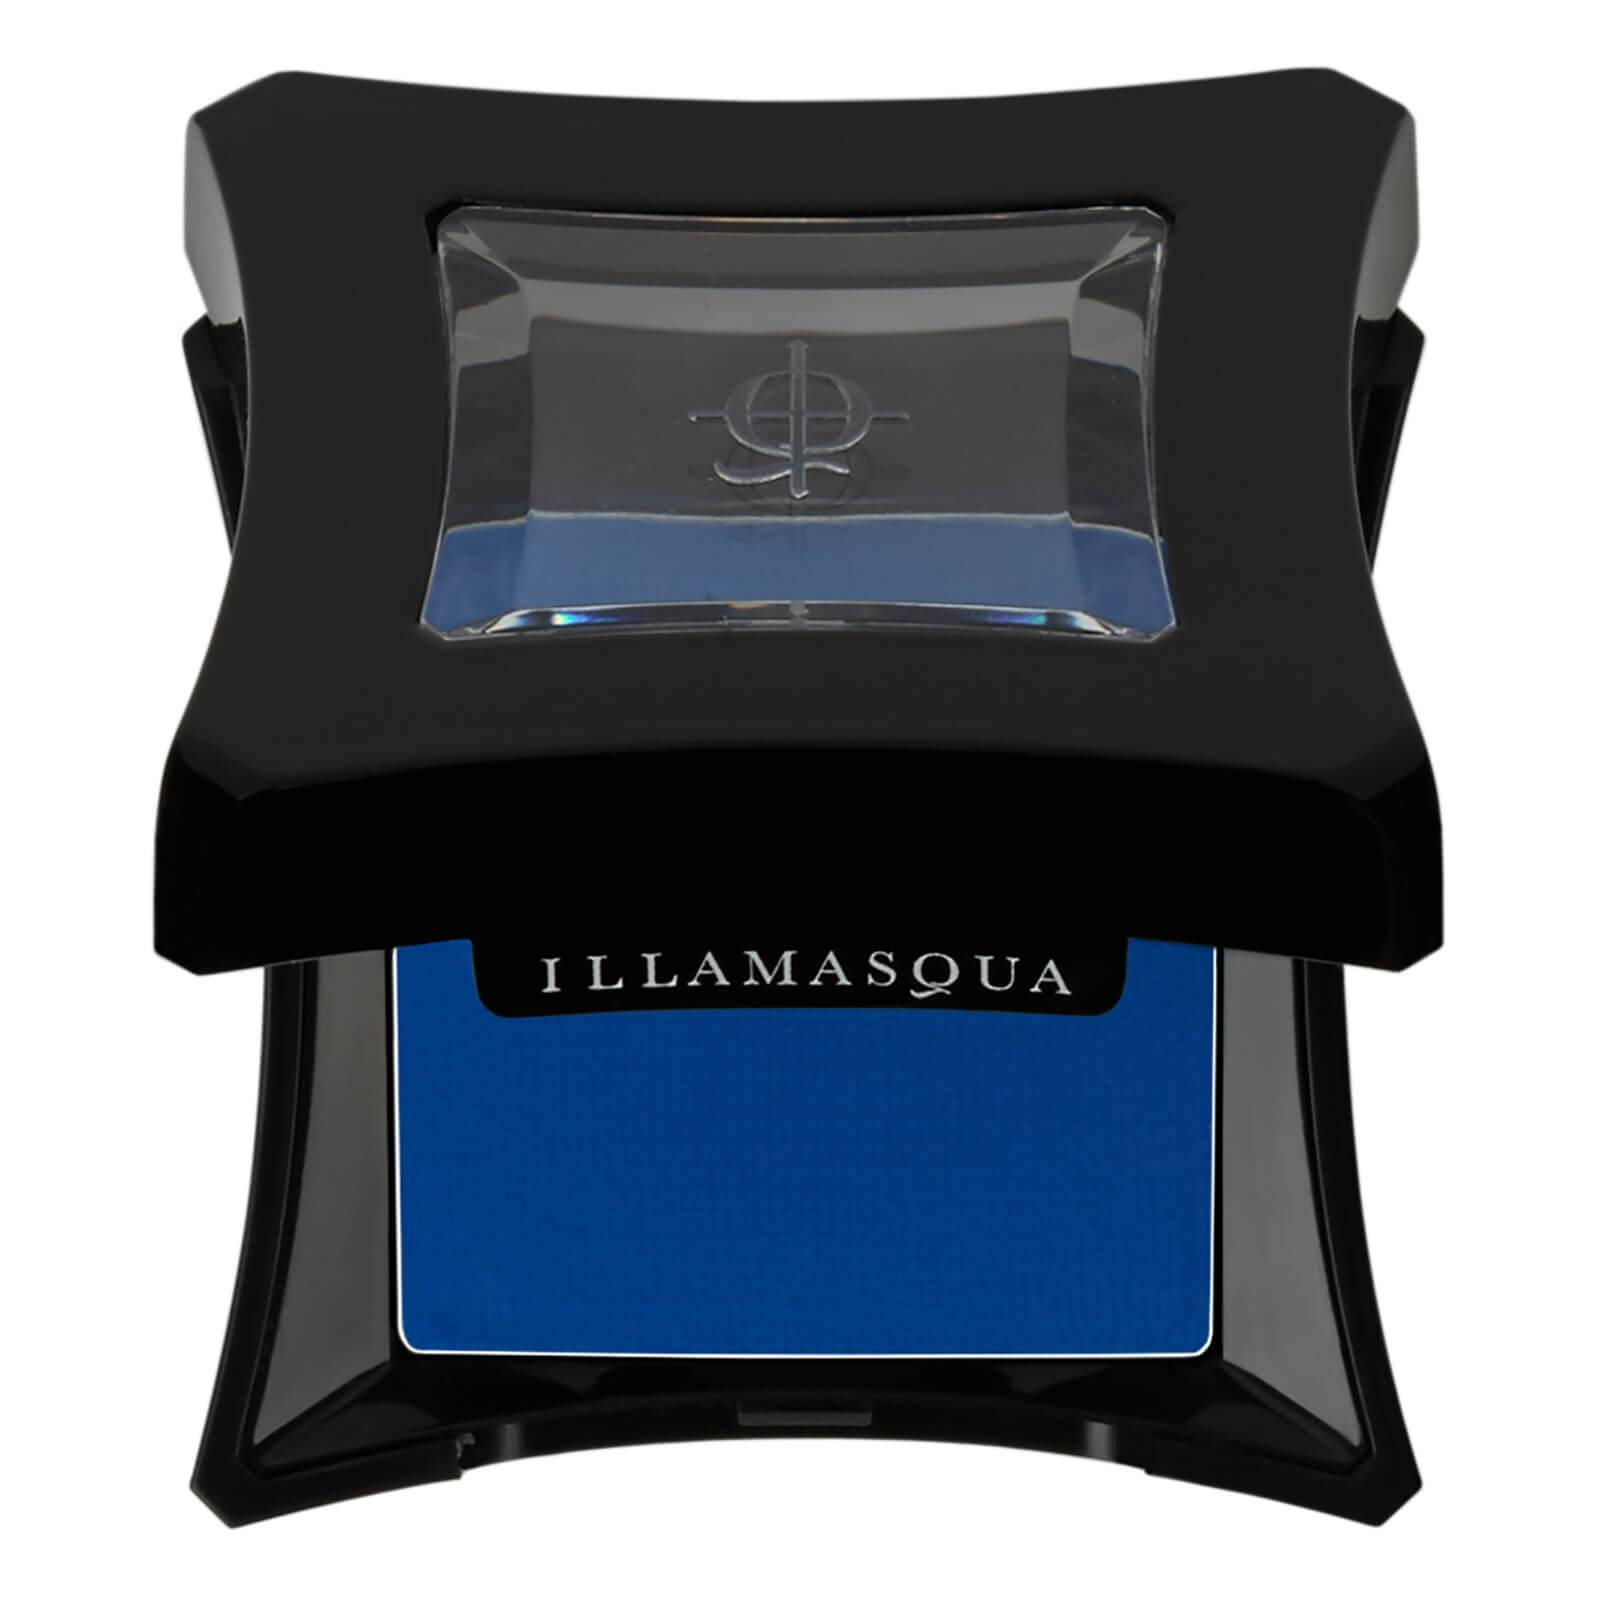 Illamasqua Powder Eye Shadow 2g (Various Shades) - Sadist